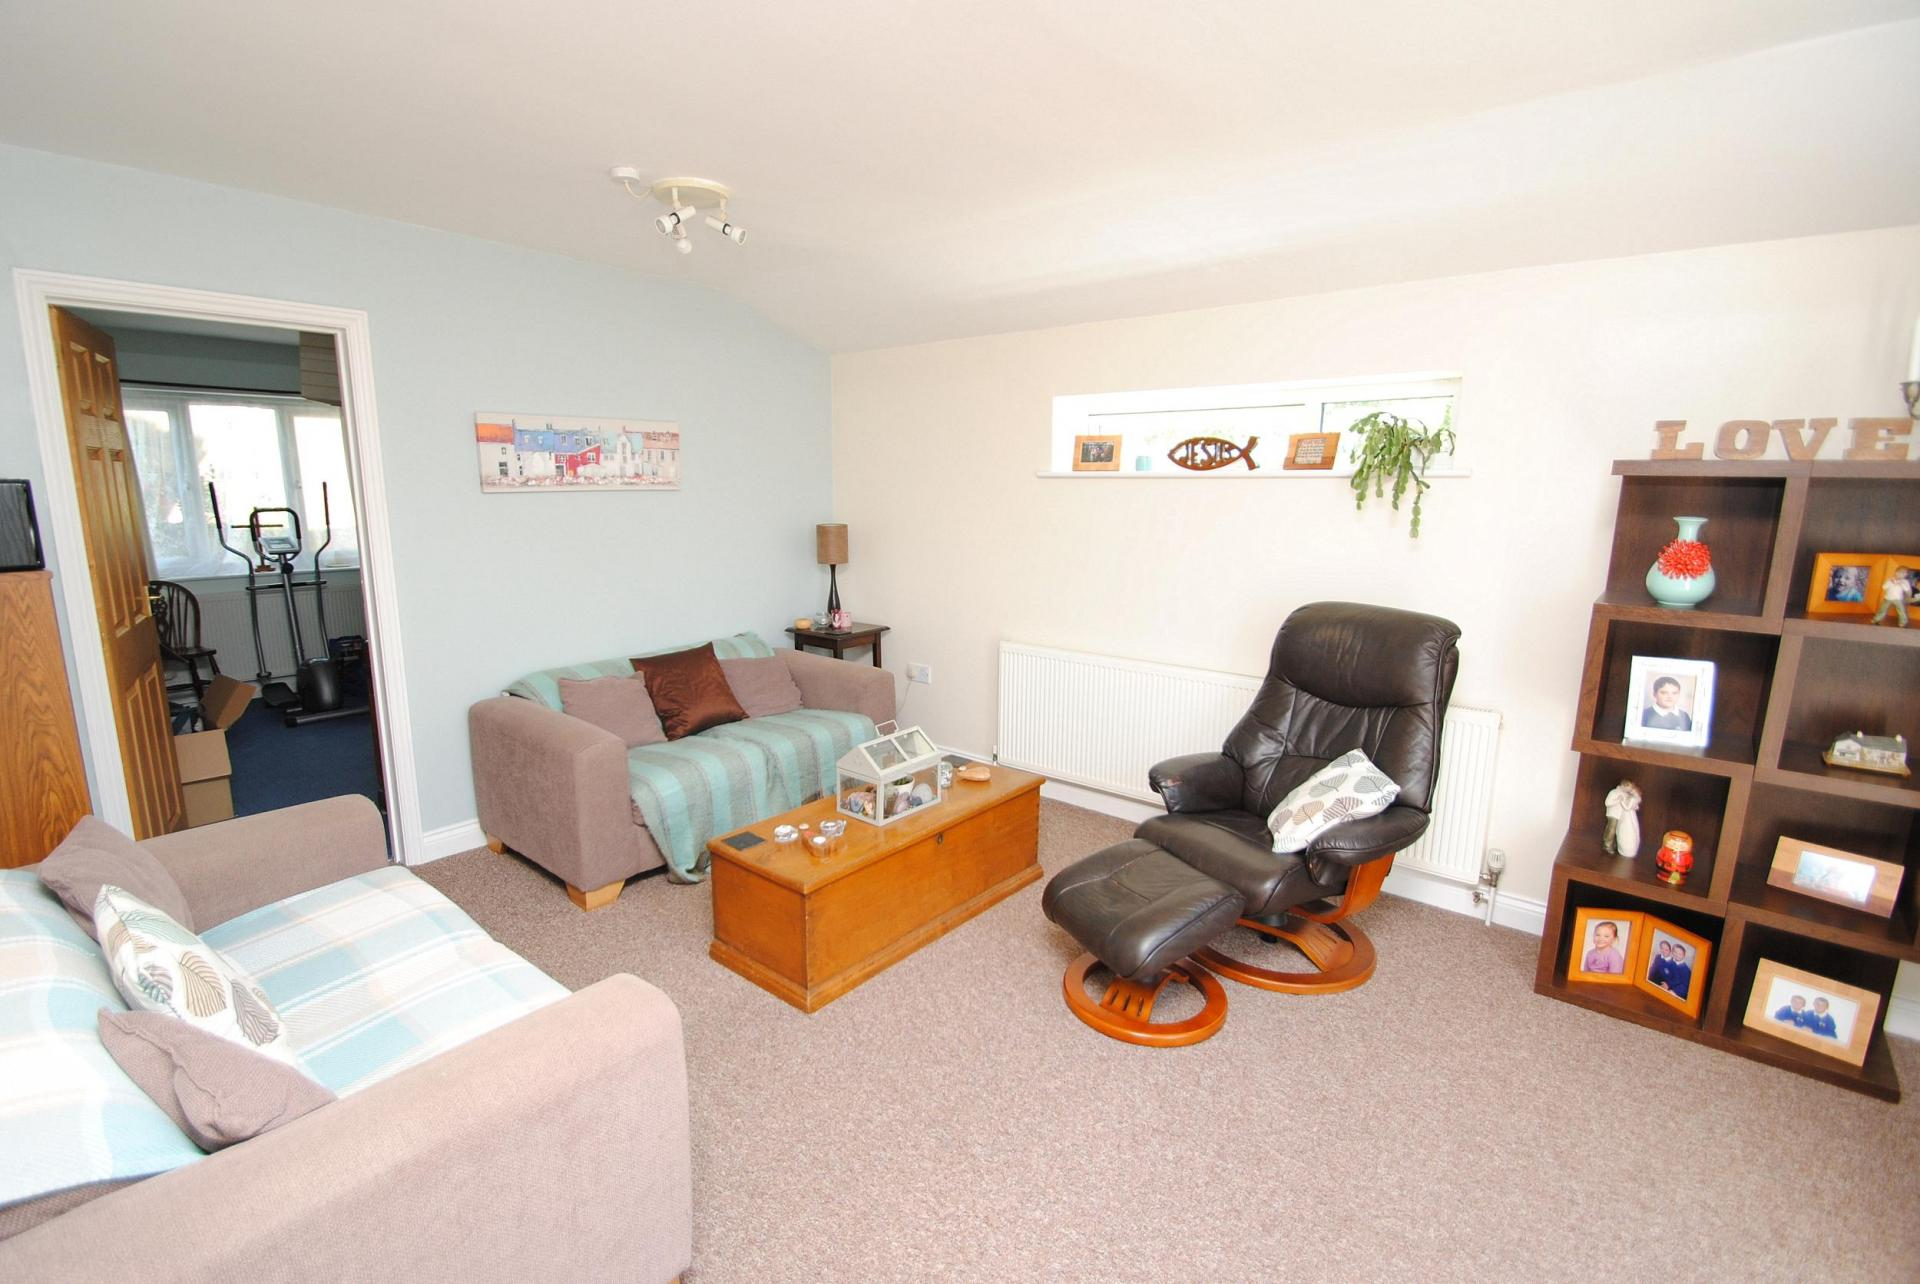 Property For Sale In Ilfracombe With Store Rooms